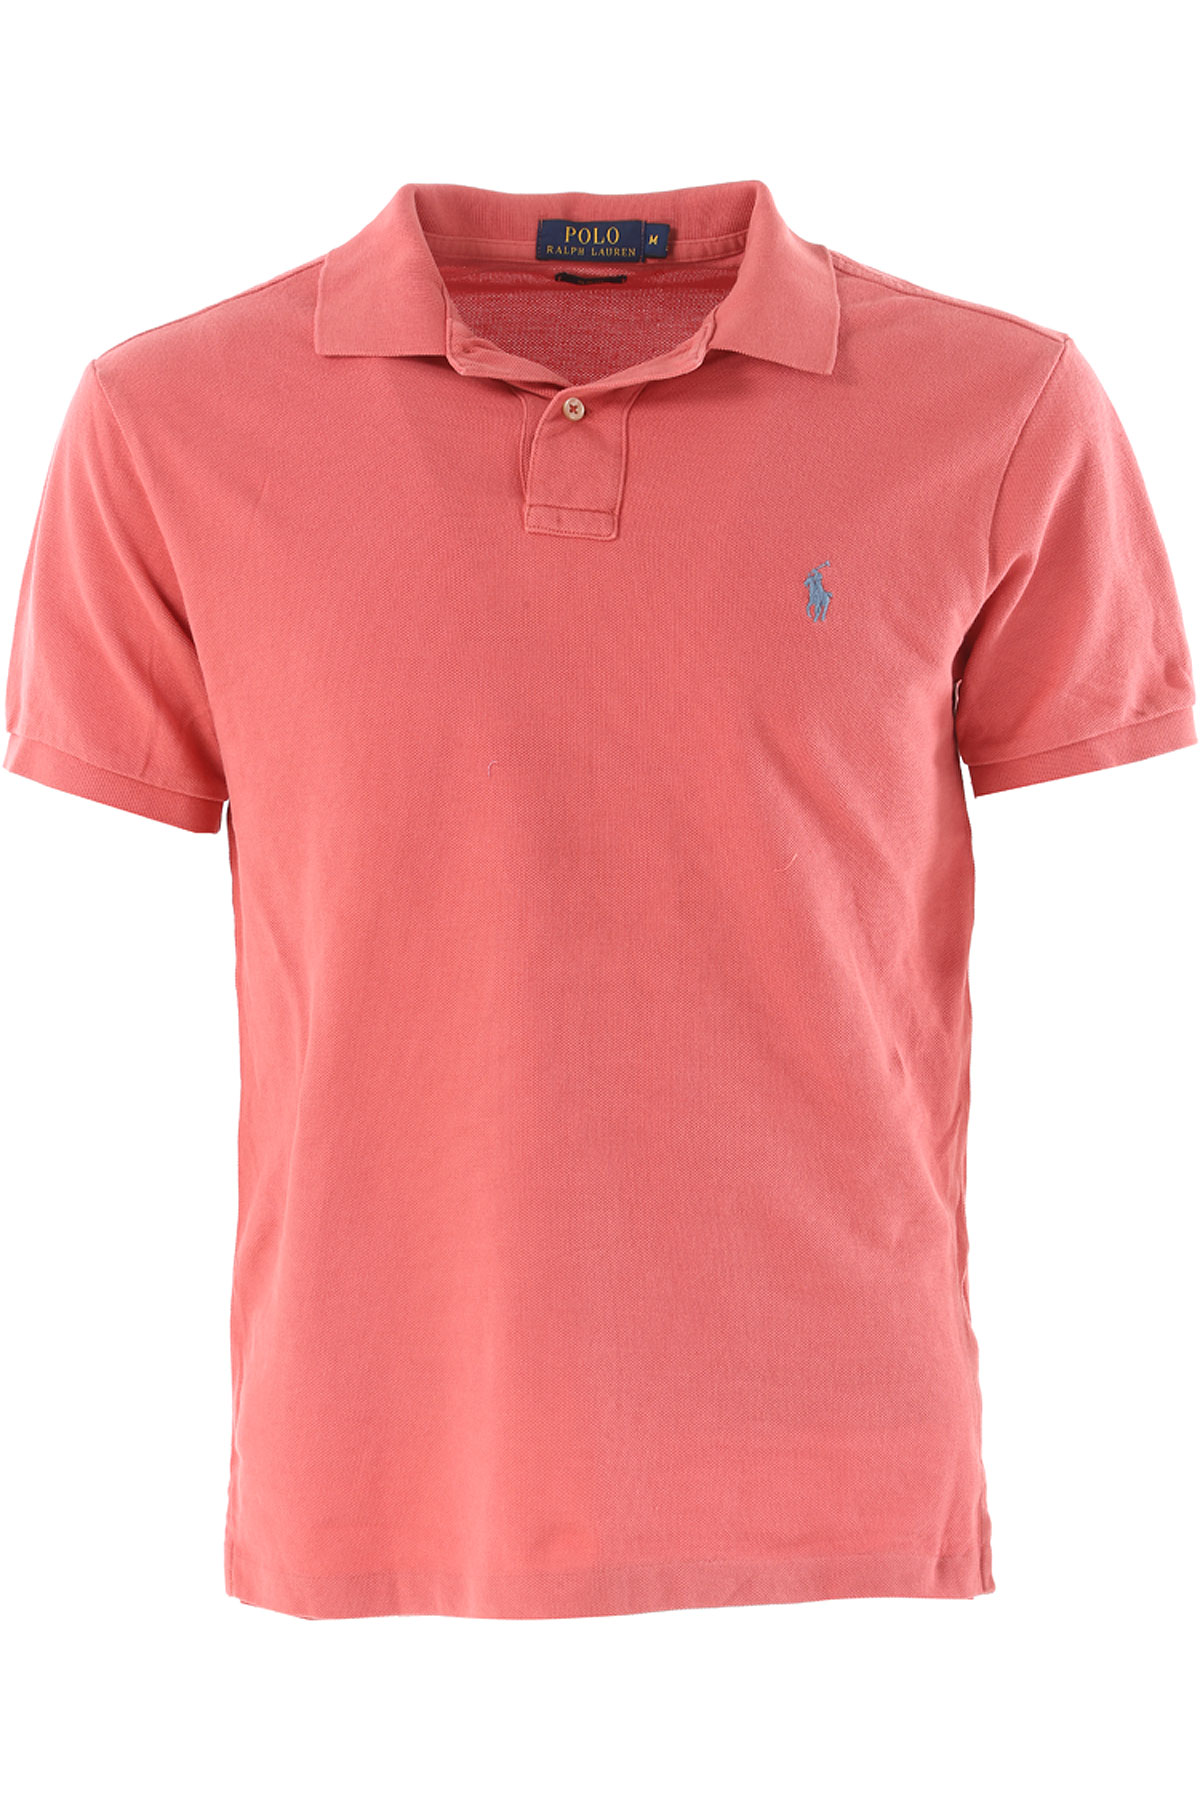 Ralph Lauren Polo Shirt for Men On Sale in Outlet, coral red, Cotton, 2017, S XL USA-392701